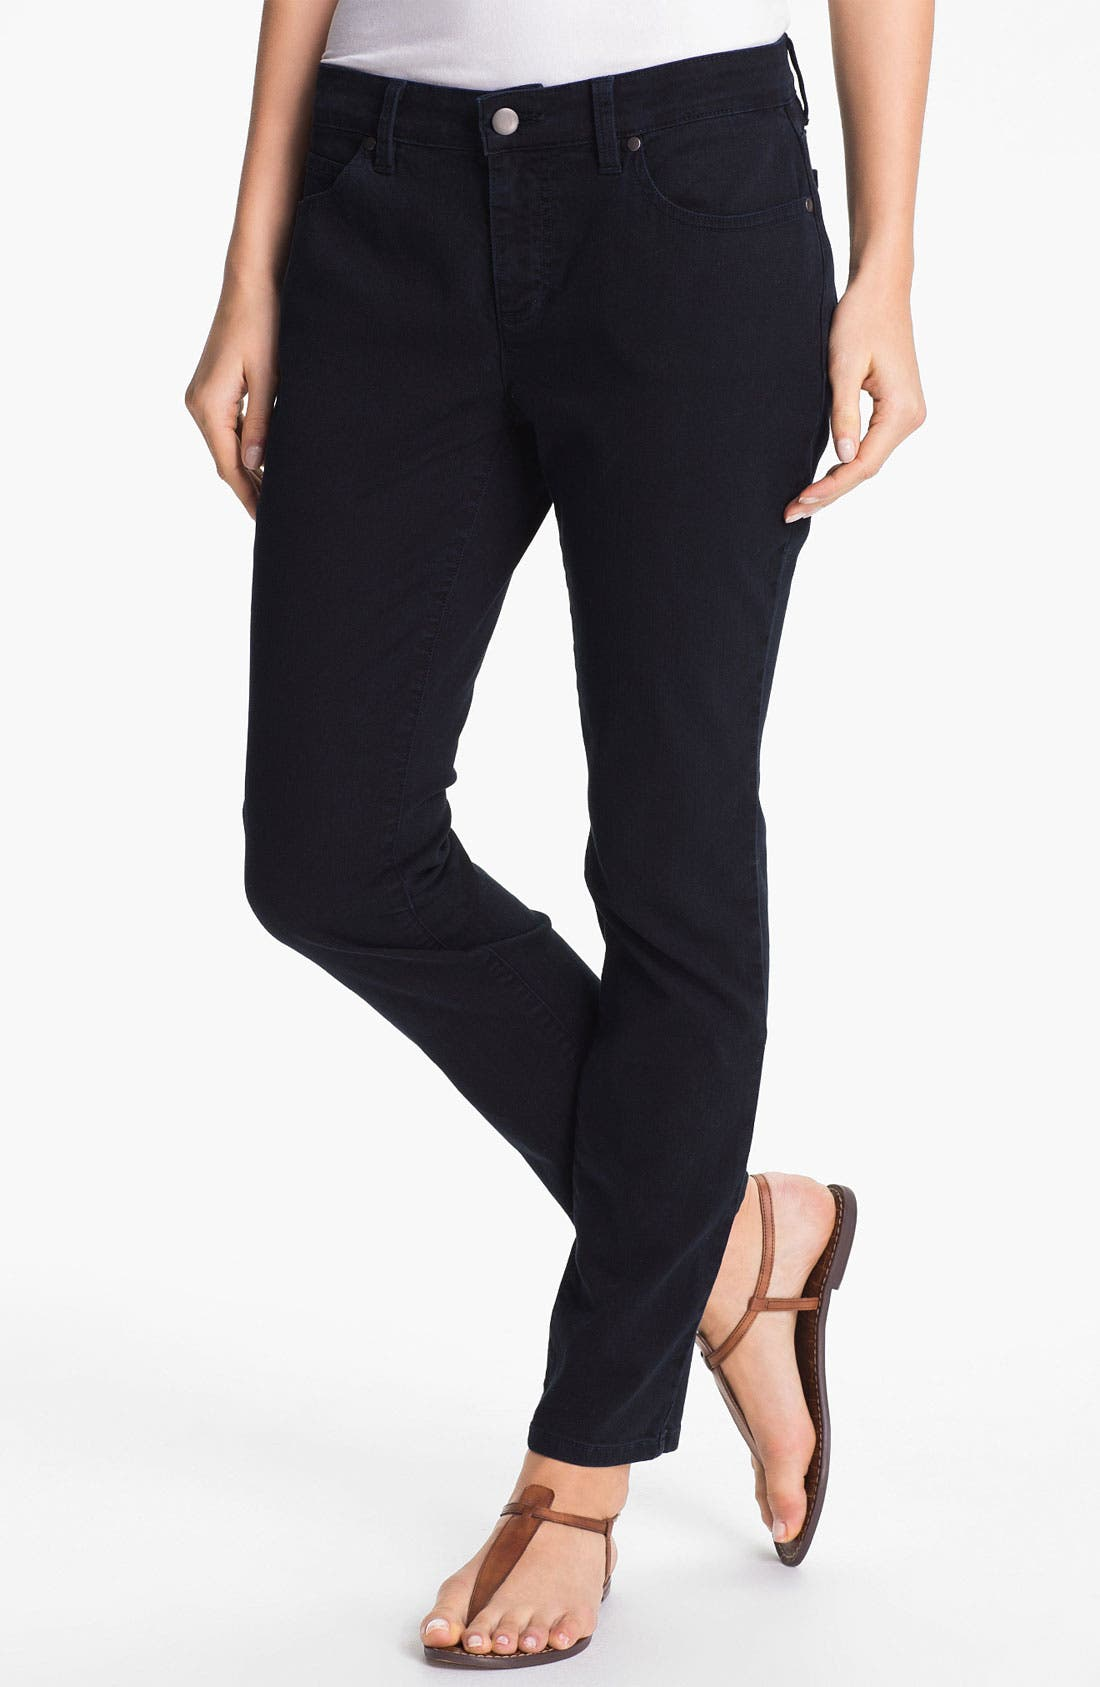 Alternate Image 1 Selected - Eileen Fisher Skinny Ankle Jeans (Online Only)